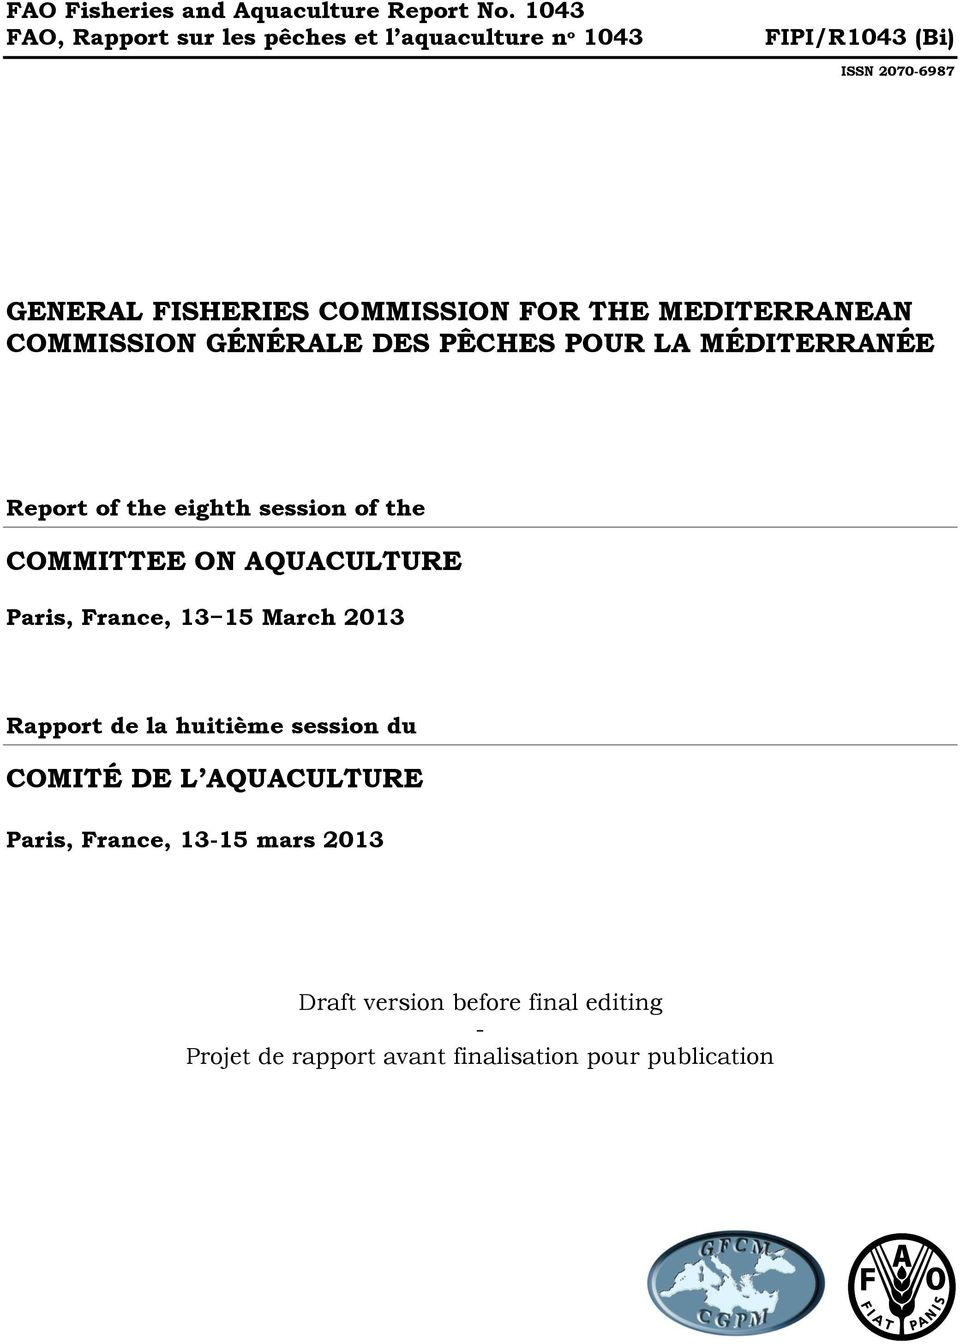 MEDITERRANEAN COMMISSION GÉNÉRALE DES PÊCHES POUR LA MÉDITERRANÉE Report of the eighth session of the COMMITTEE ON AQUACULTURE